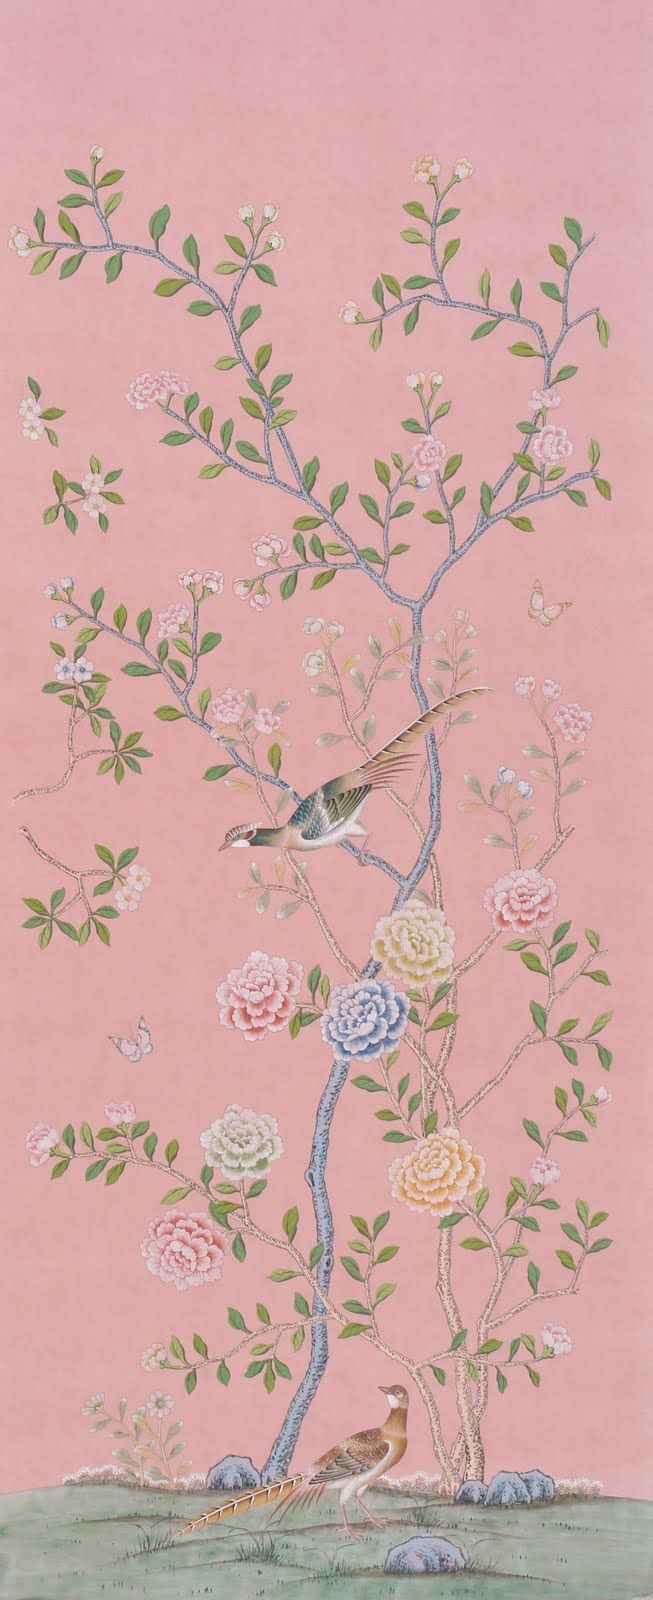 The 25 best ideas about de gournay wallpaper on pinterest for Chinoiserie design